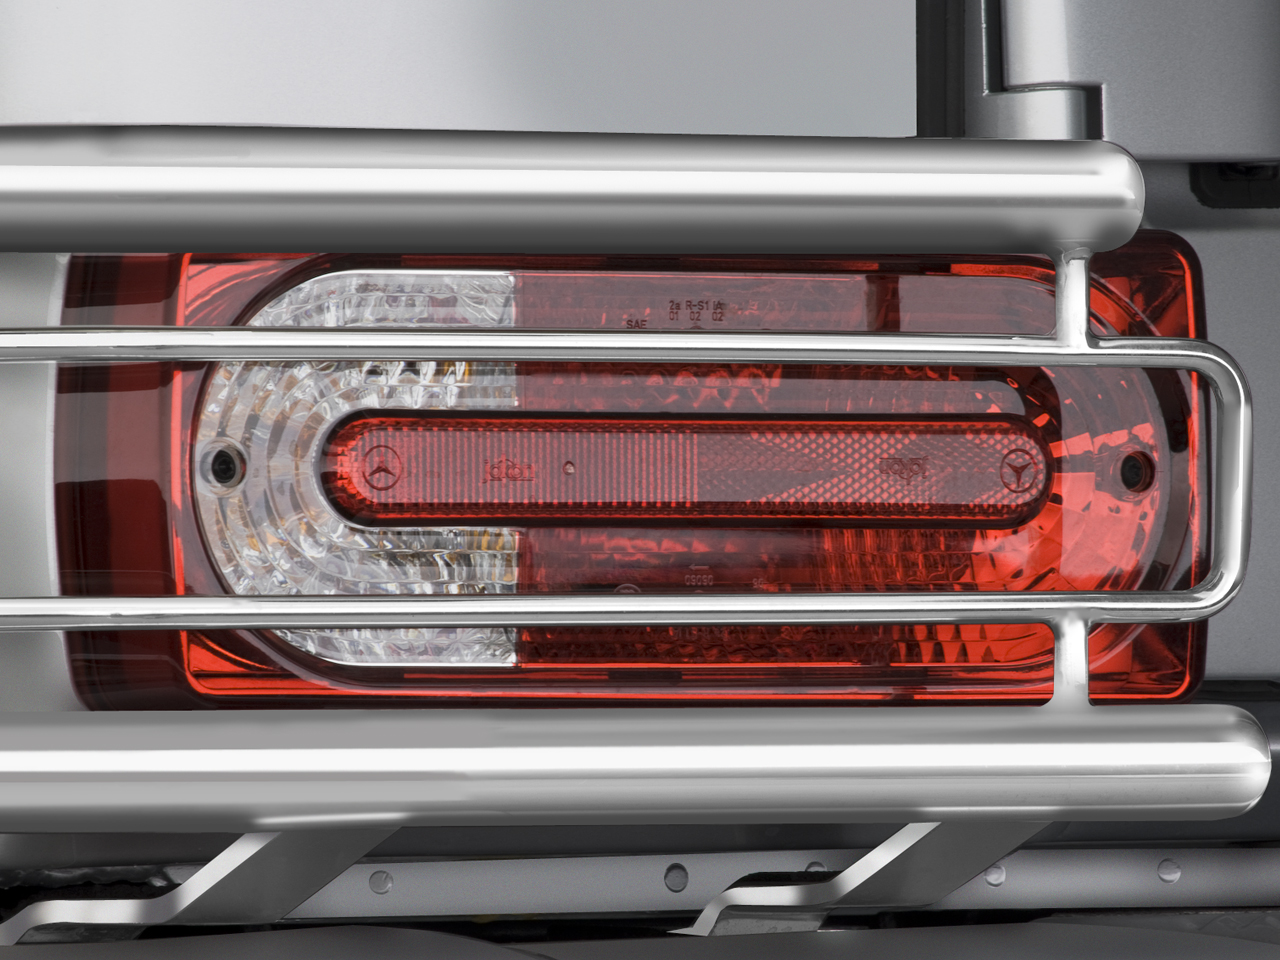 2008 mercedes benz g class g55 amg suv taillight the mercedes benz glk350 lands in ann arbor Chevy Tail Light Wiring Diagram at n-0.co